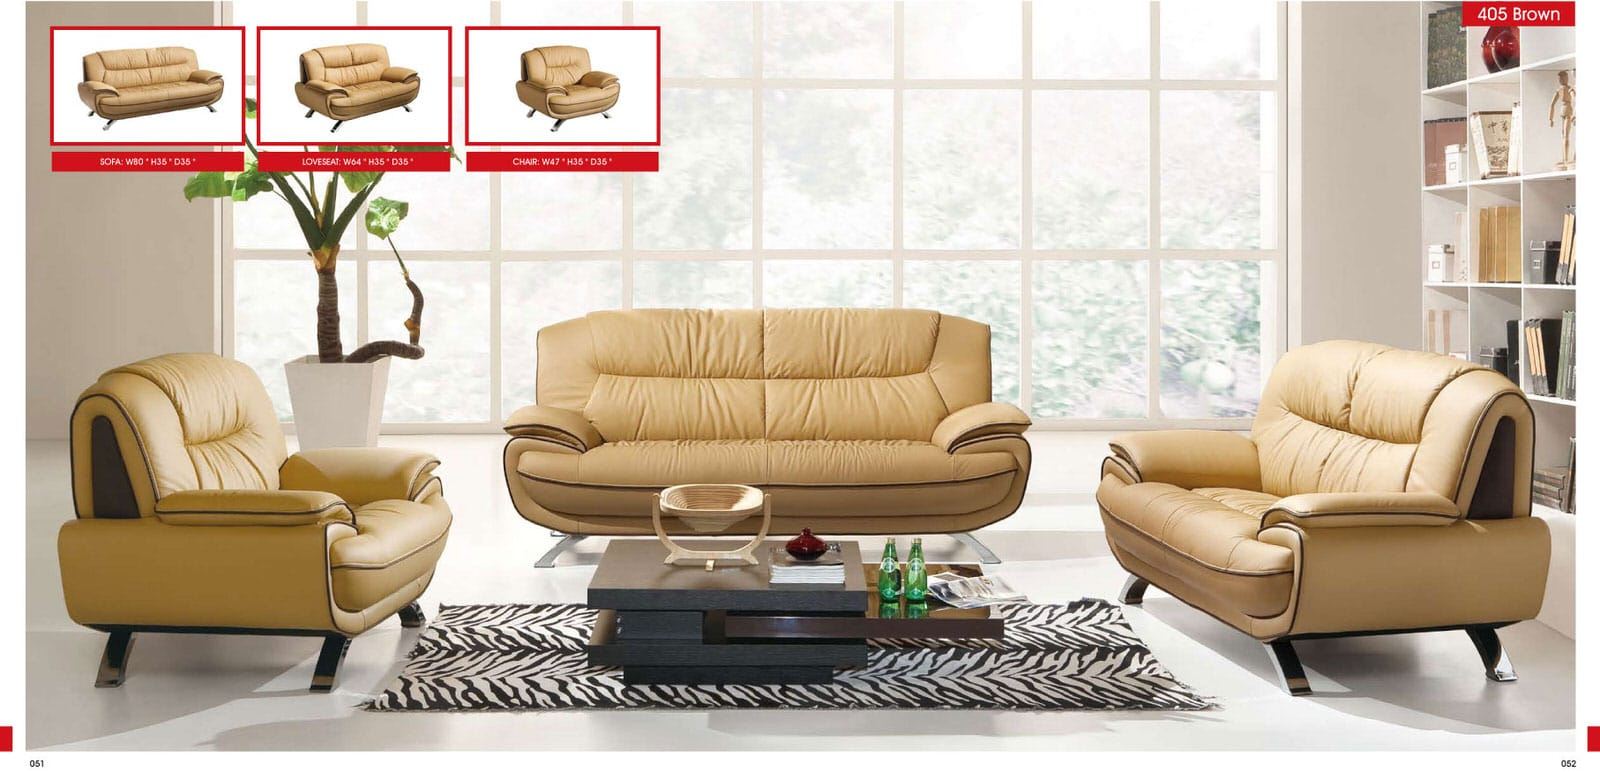 405 brown leather sofa set by esf for Sitting room chairs